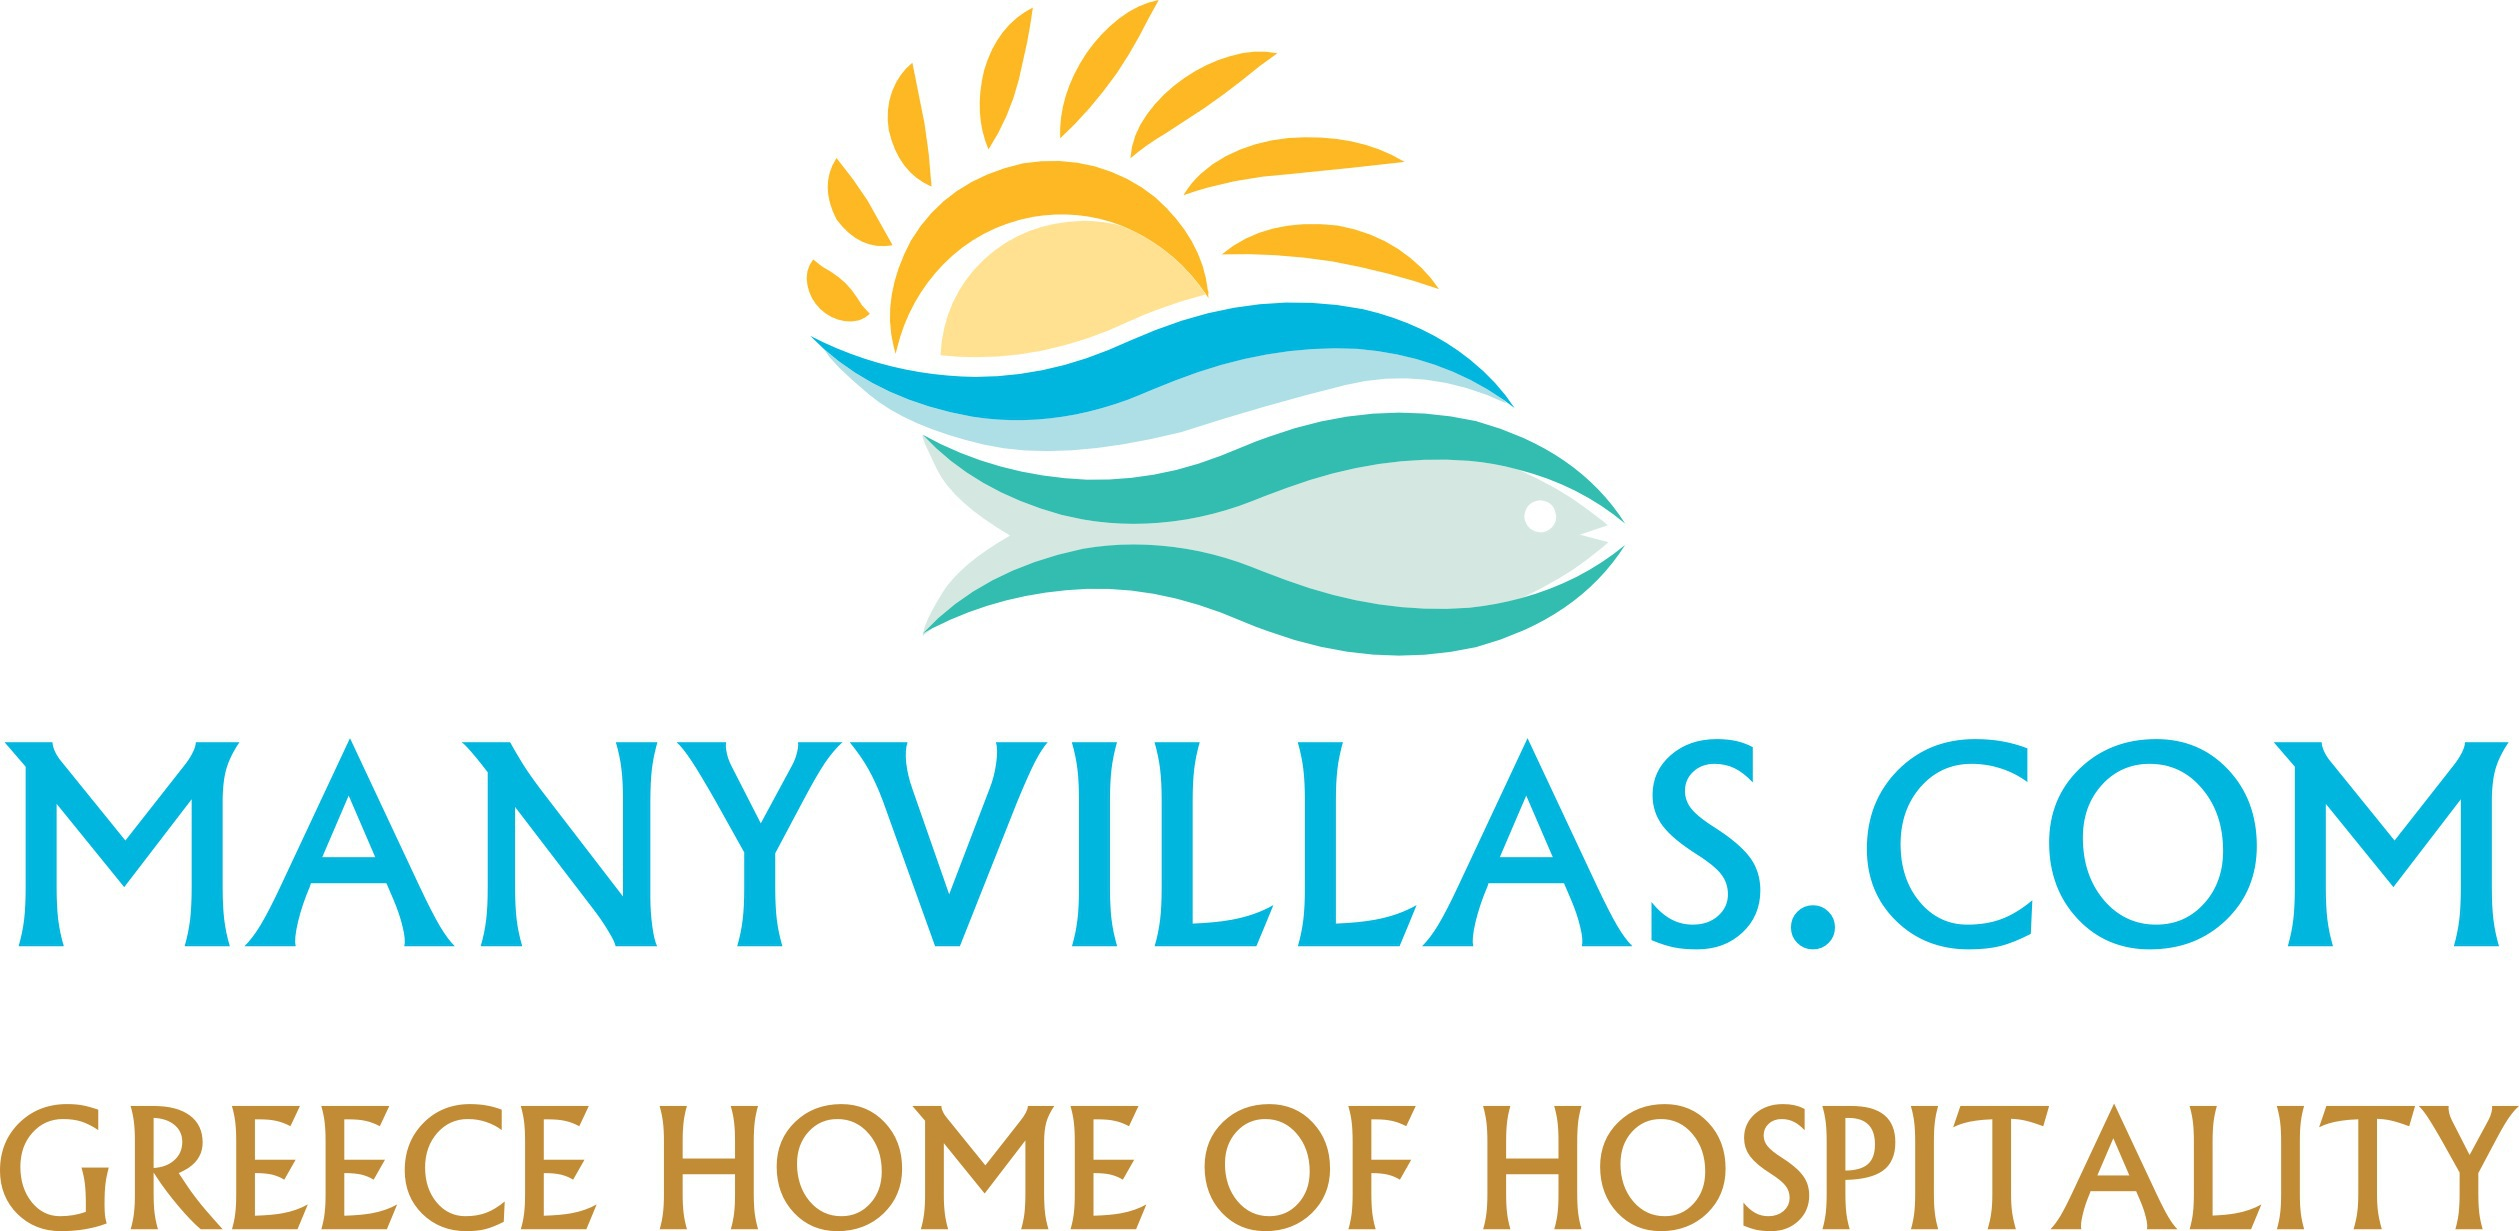 MANYVILLAS.COM GREECE HOME OF HOSPITALITY